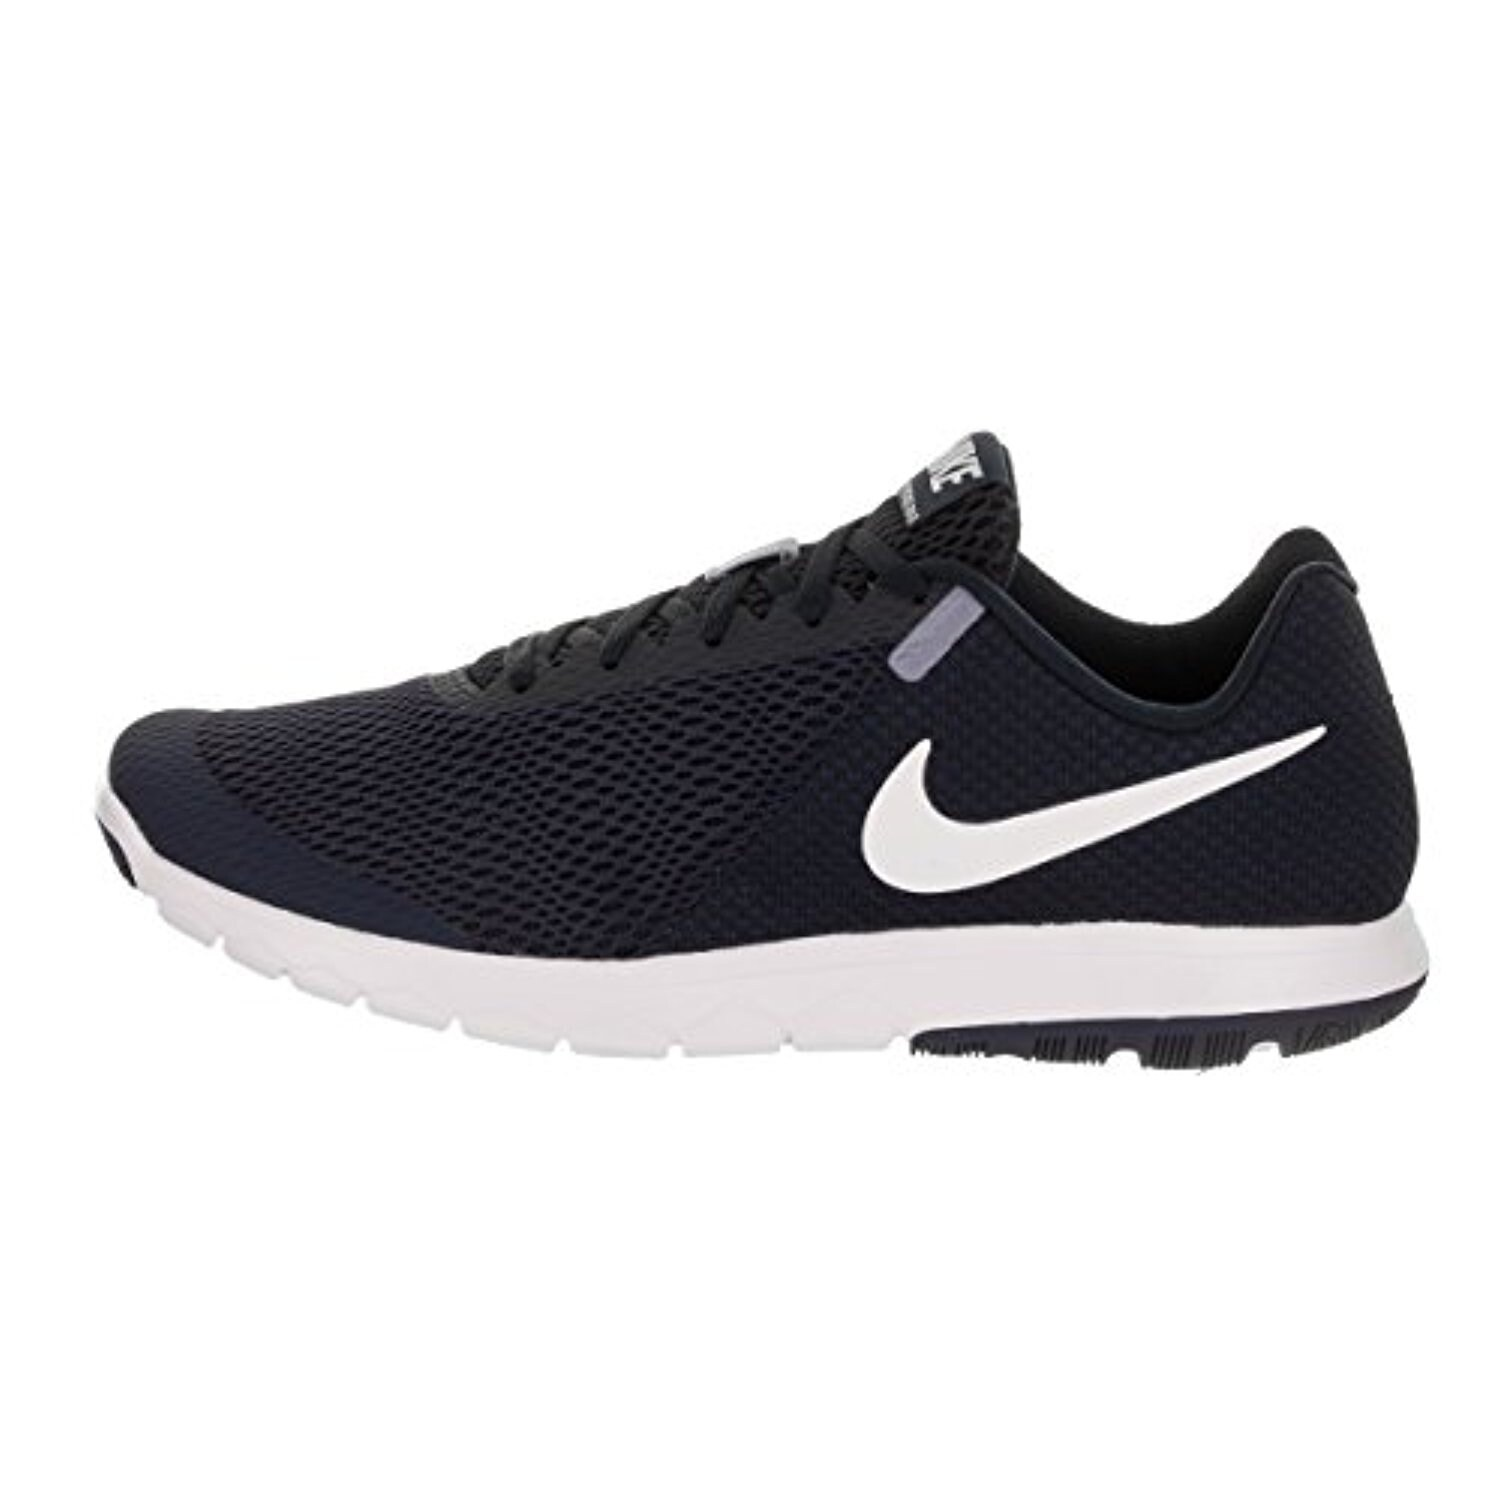 55ff2c2b11eb3 Shop Nike Men s Flex Experience Rn 6 Obsidian White Dark Obsidian Running  Shoe - obsidian white dark obsidian - Free Shipping Today - Overstock -  18275493